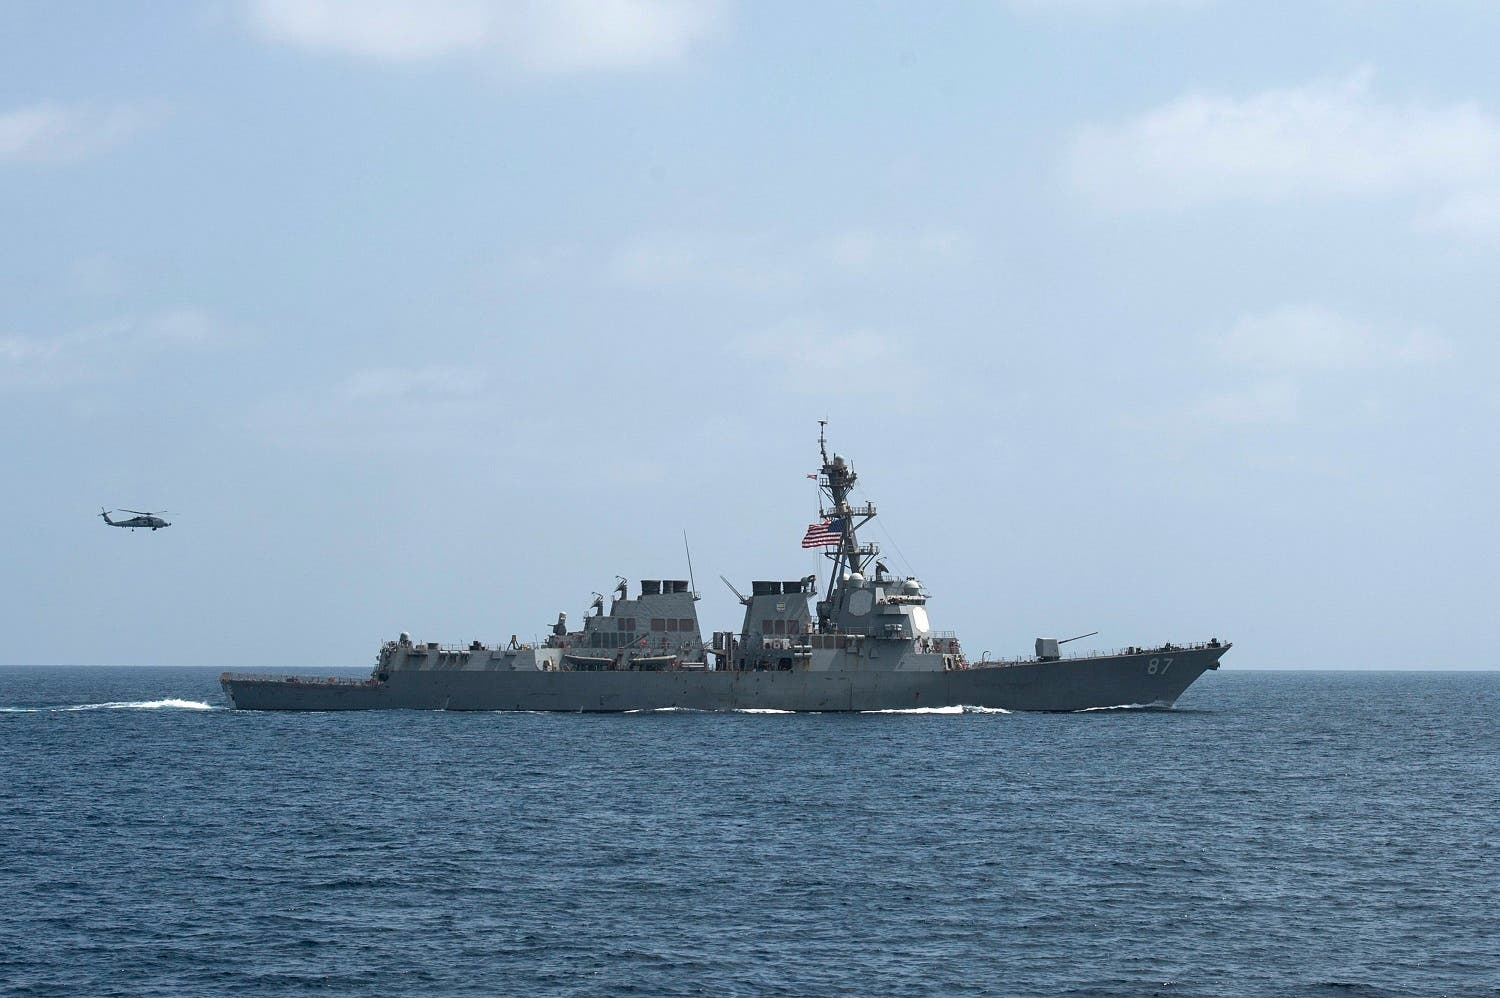 The U.S. Navy guided-missile destroyer USS Mason conducts divisional tactic maneuvers in the Gulf of Oman. (Reuters)